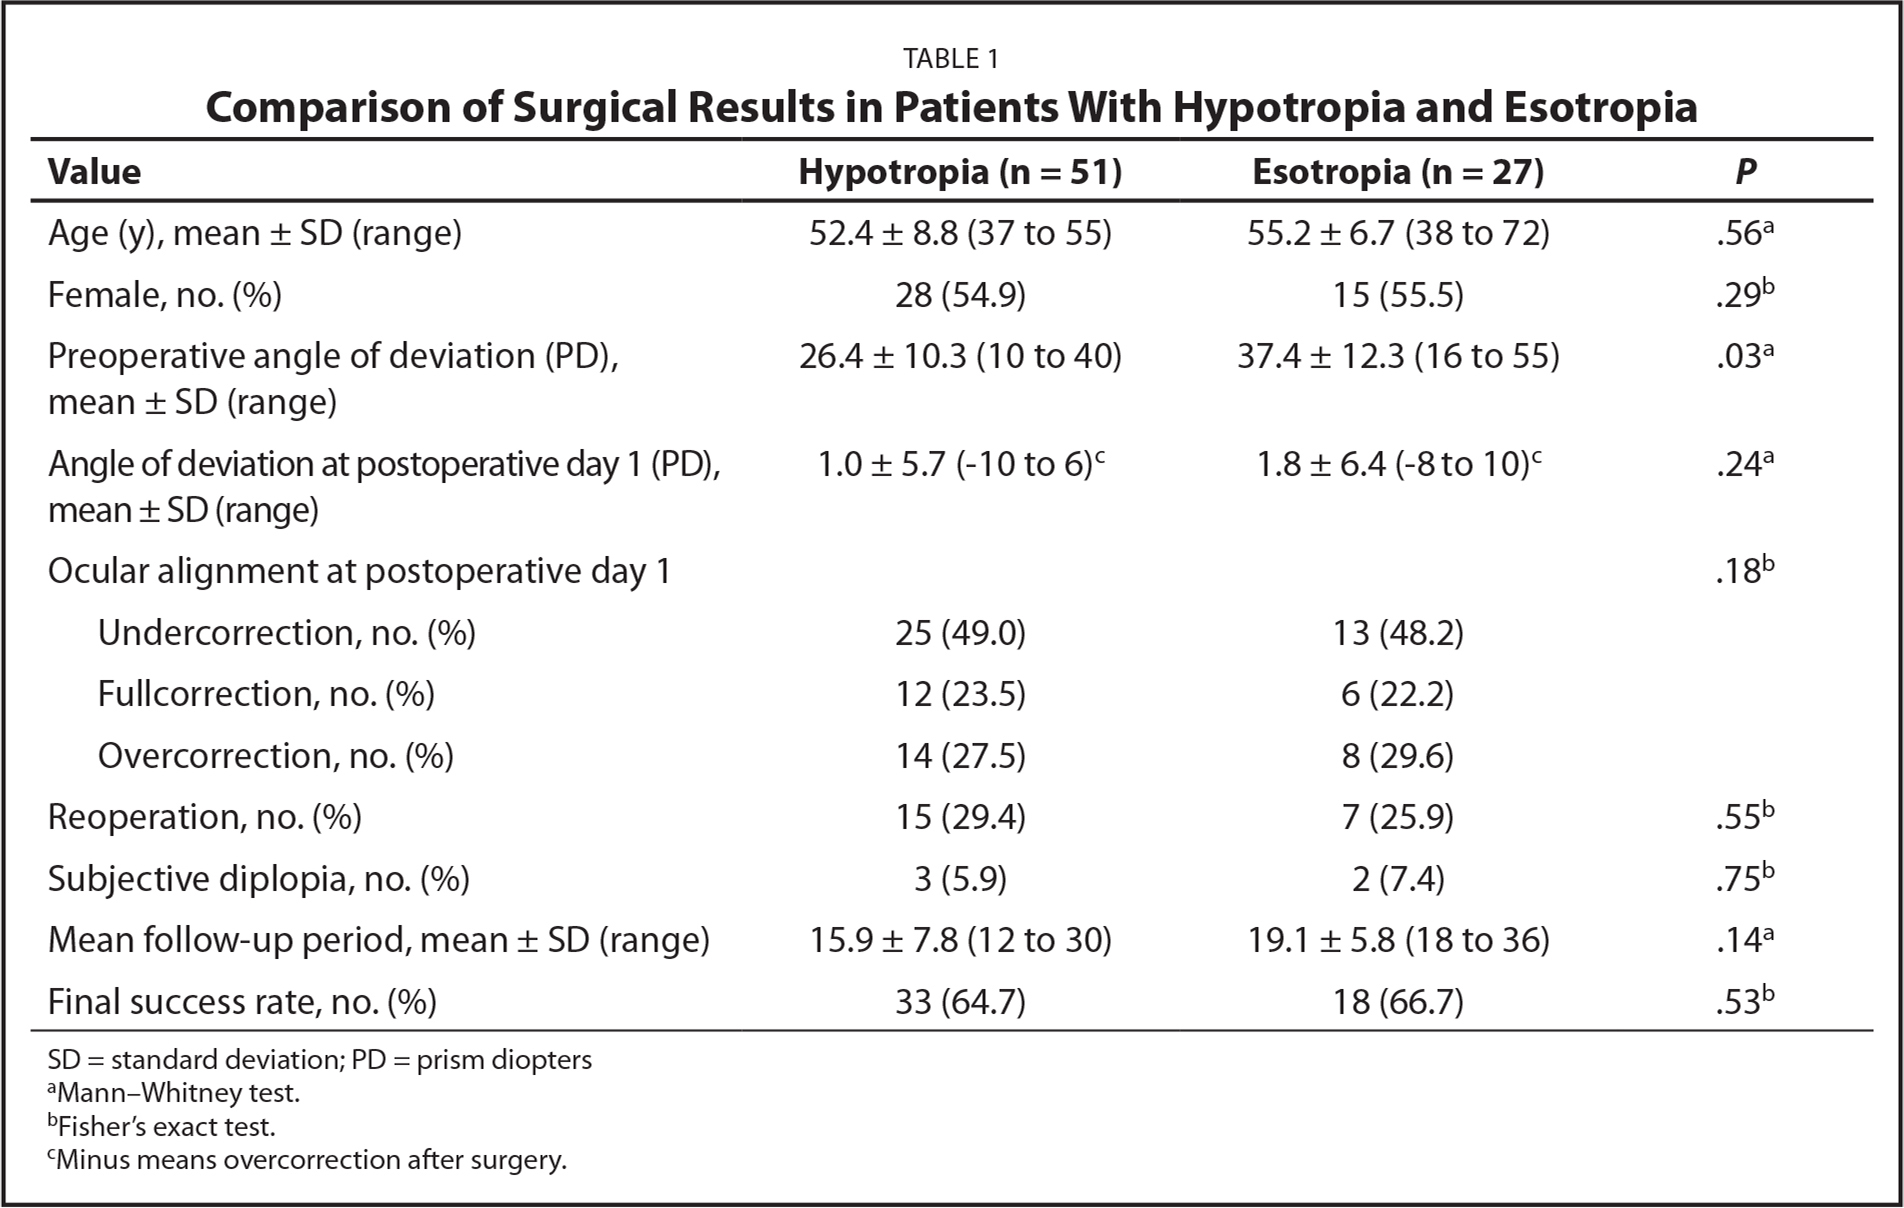 Comparison of Surgical Results in Patients With Hypotropia and Esotropia